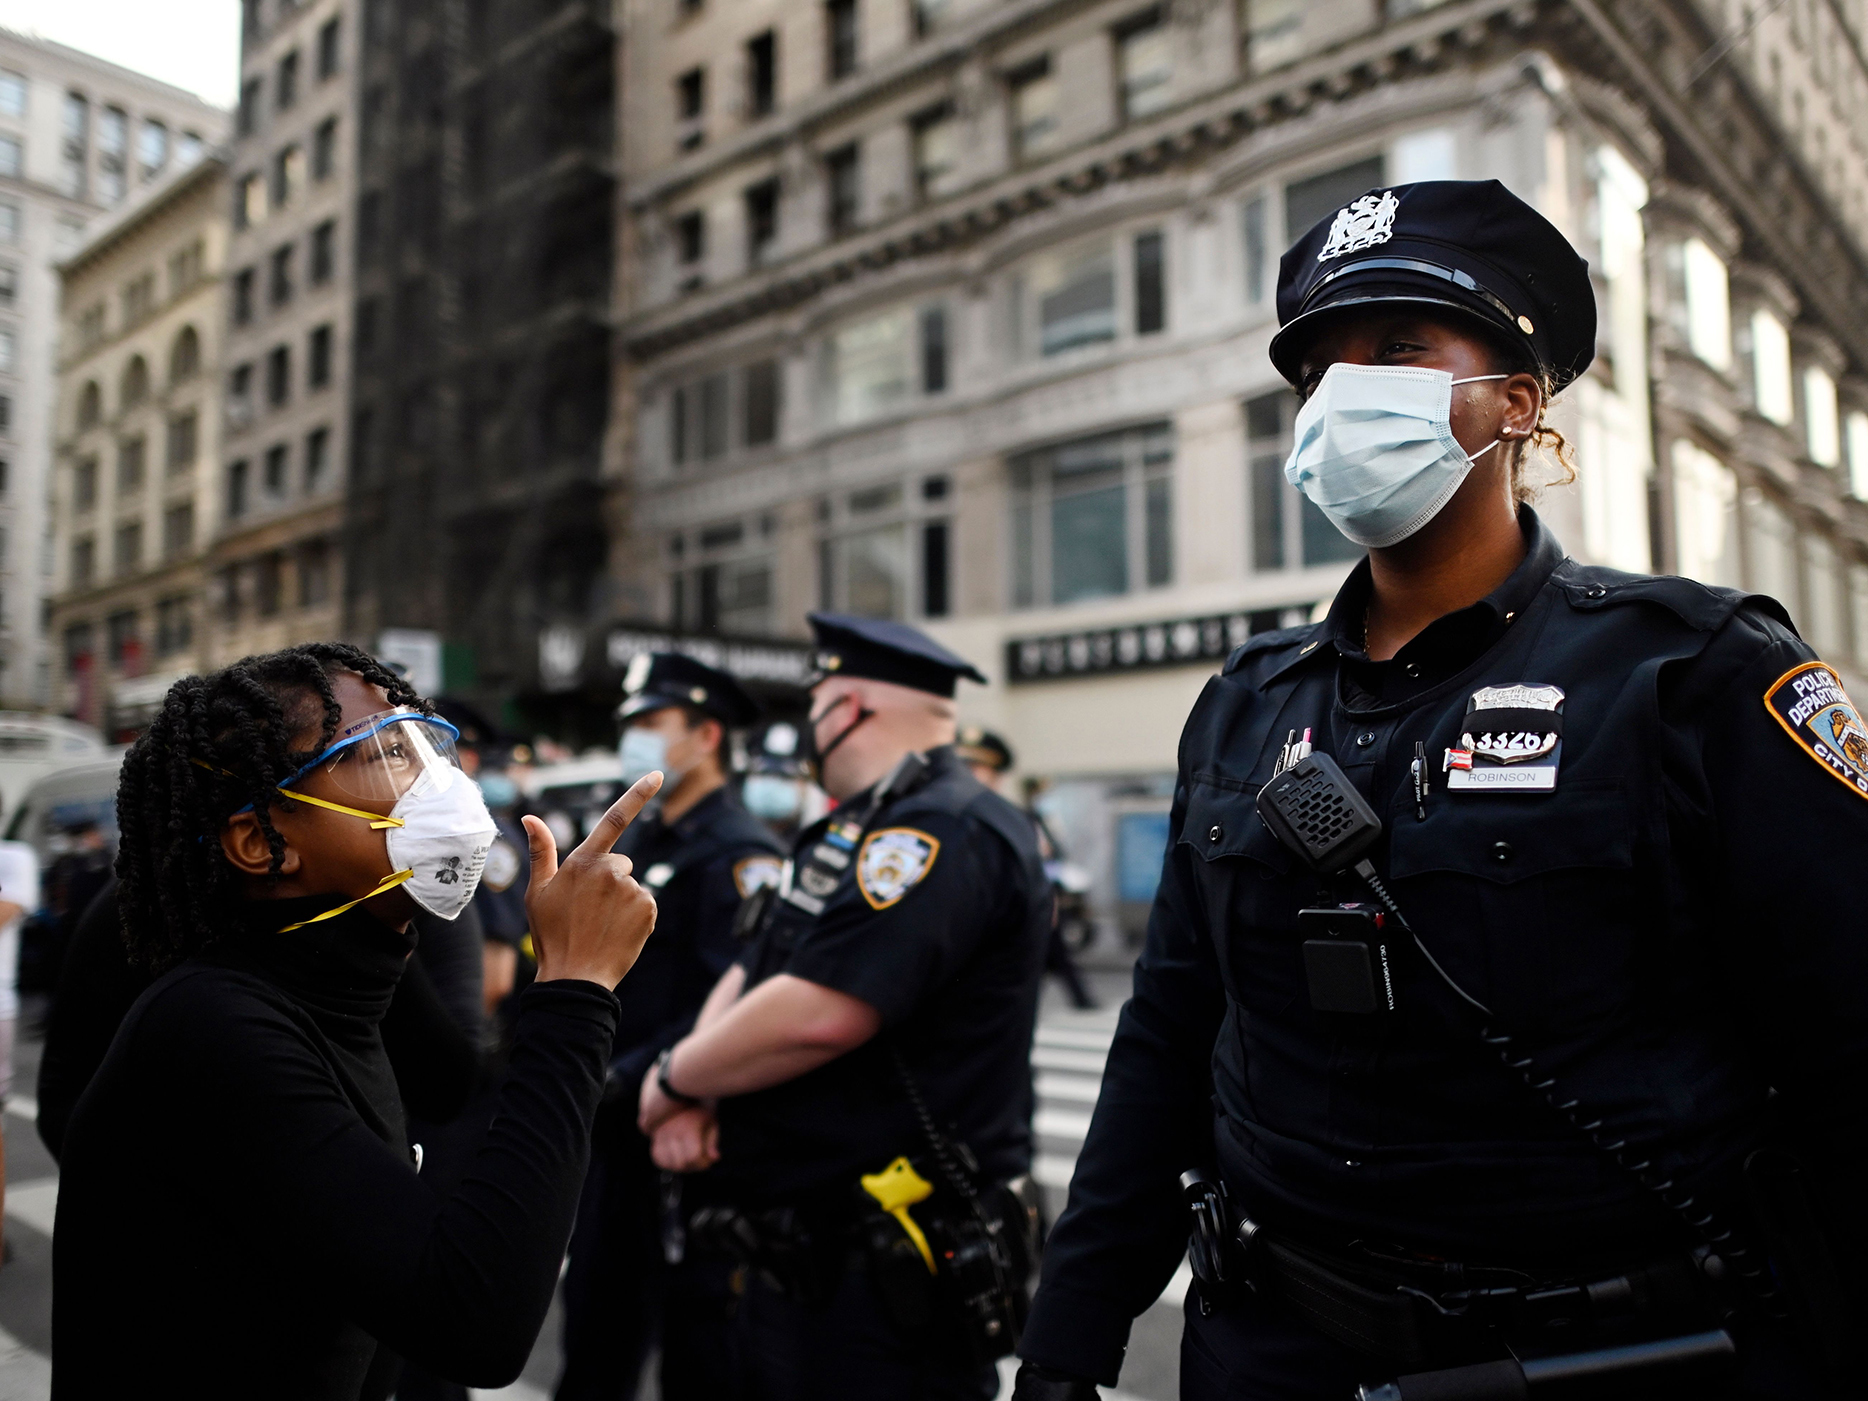 """Protestors shout in front of NYPD officers during a """"Black Lives Matter"""" demonstration last summer in New York City, in outrage over the death of a black man in Minnesota who died after a white policeman kneeled on his neck for several minutes."""